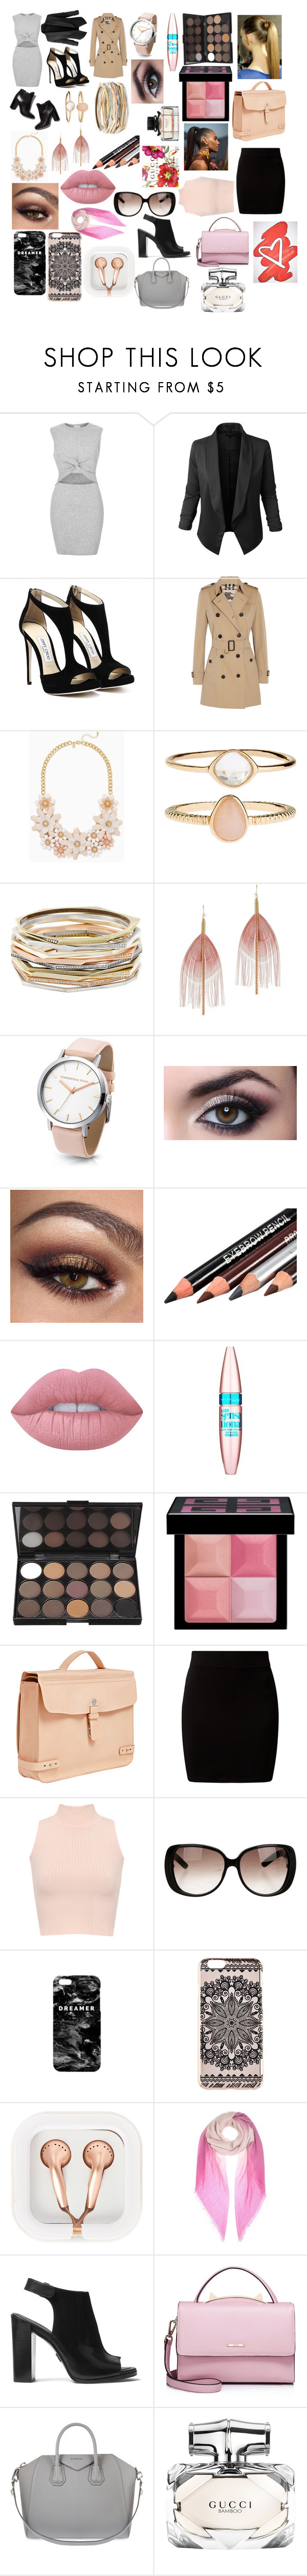 """""""Work"""" by fashionista0333 ❤ liked on Polyvore featuring River Island, LE3NO, Pierre Hardy, Burberry, Accessorize, Kendra Scott, Serefina, Lime Crime, Maybelline and Givenchy"""